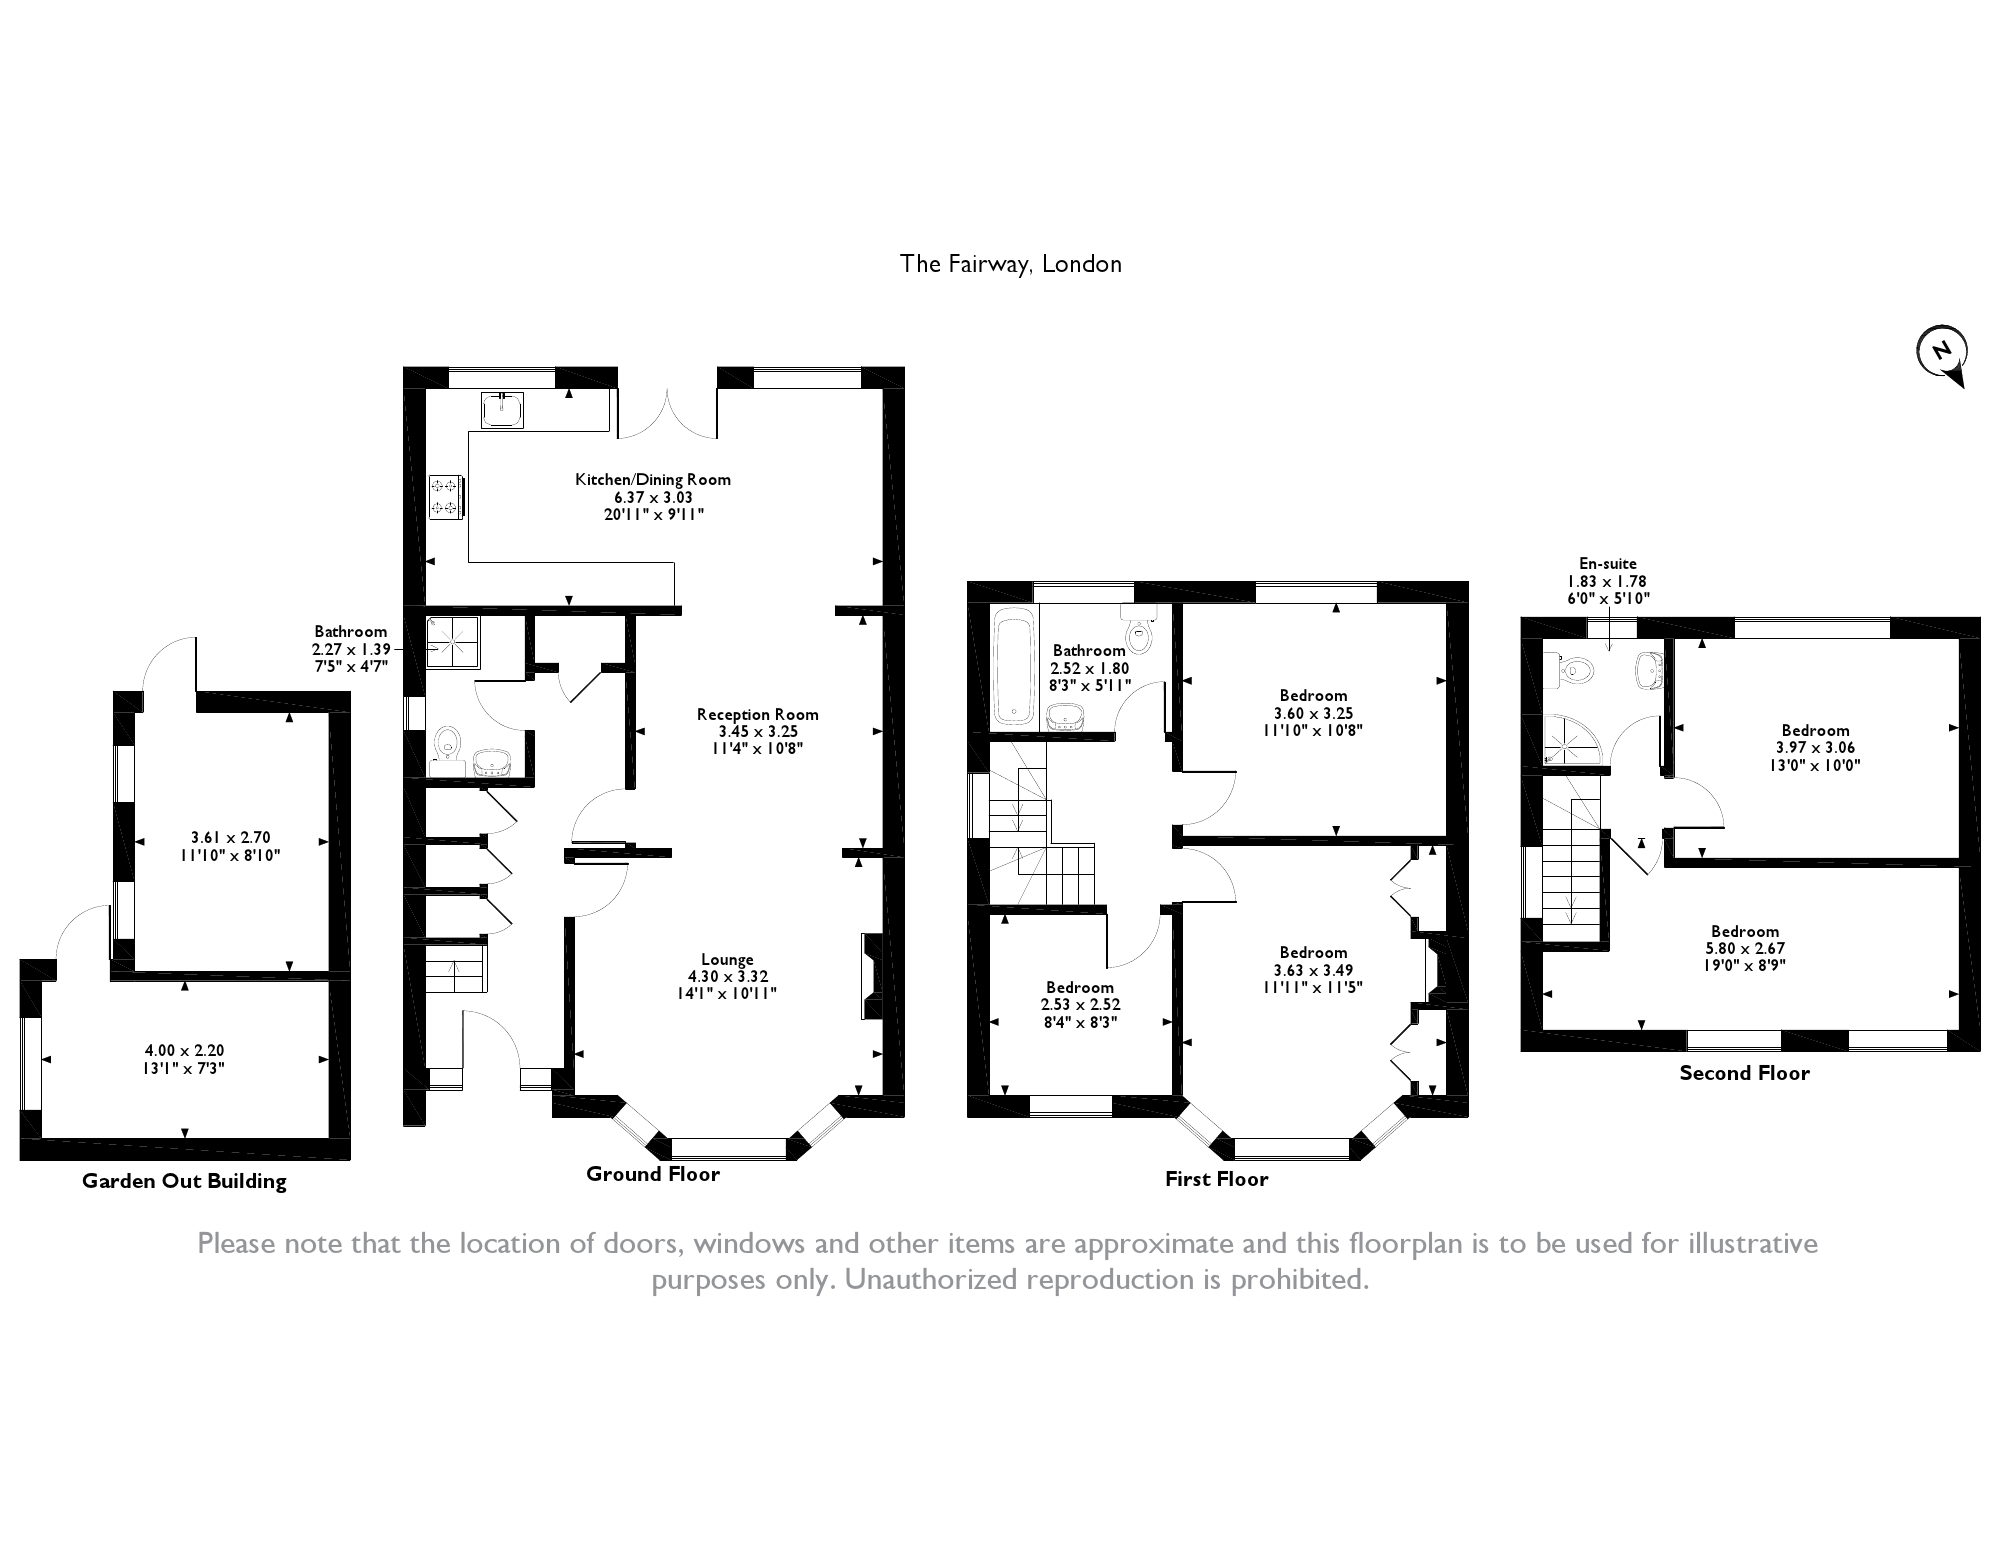 The Fairway, London, N14 floor plan